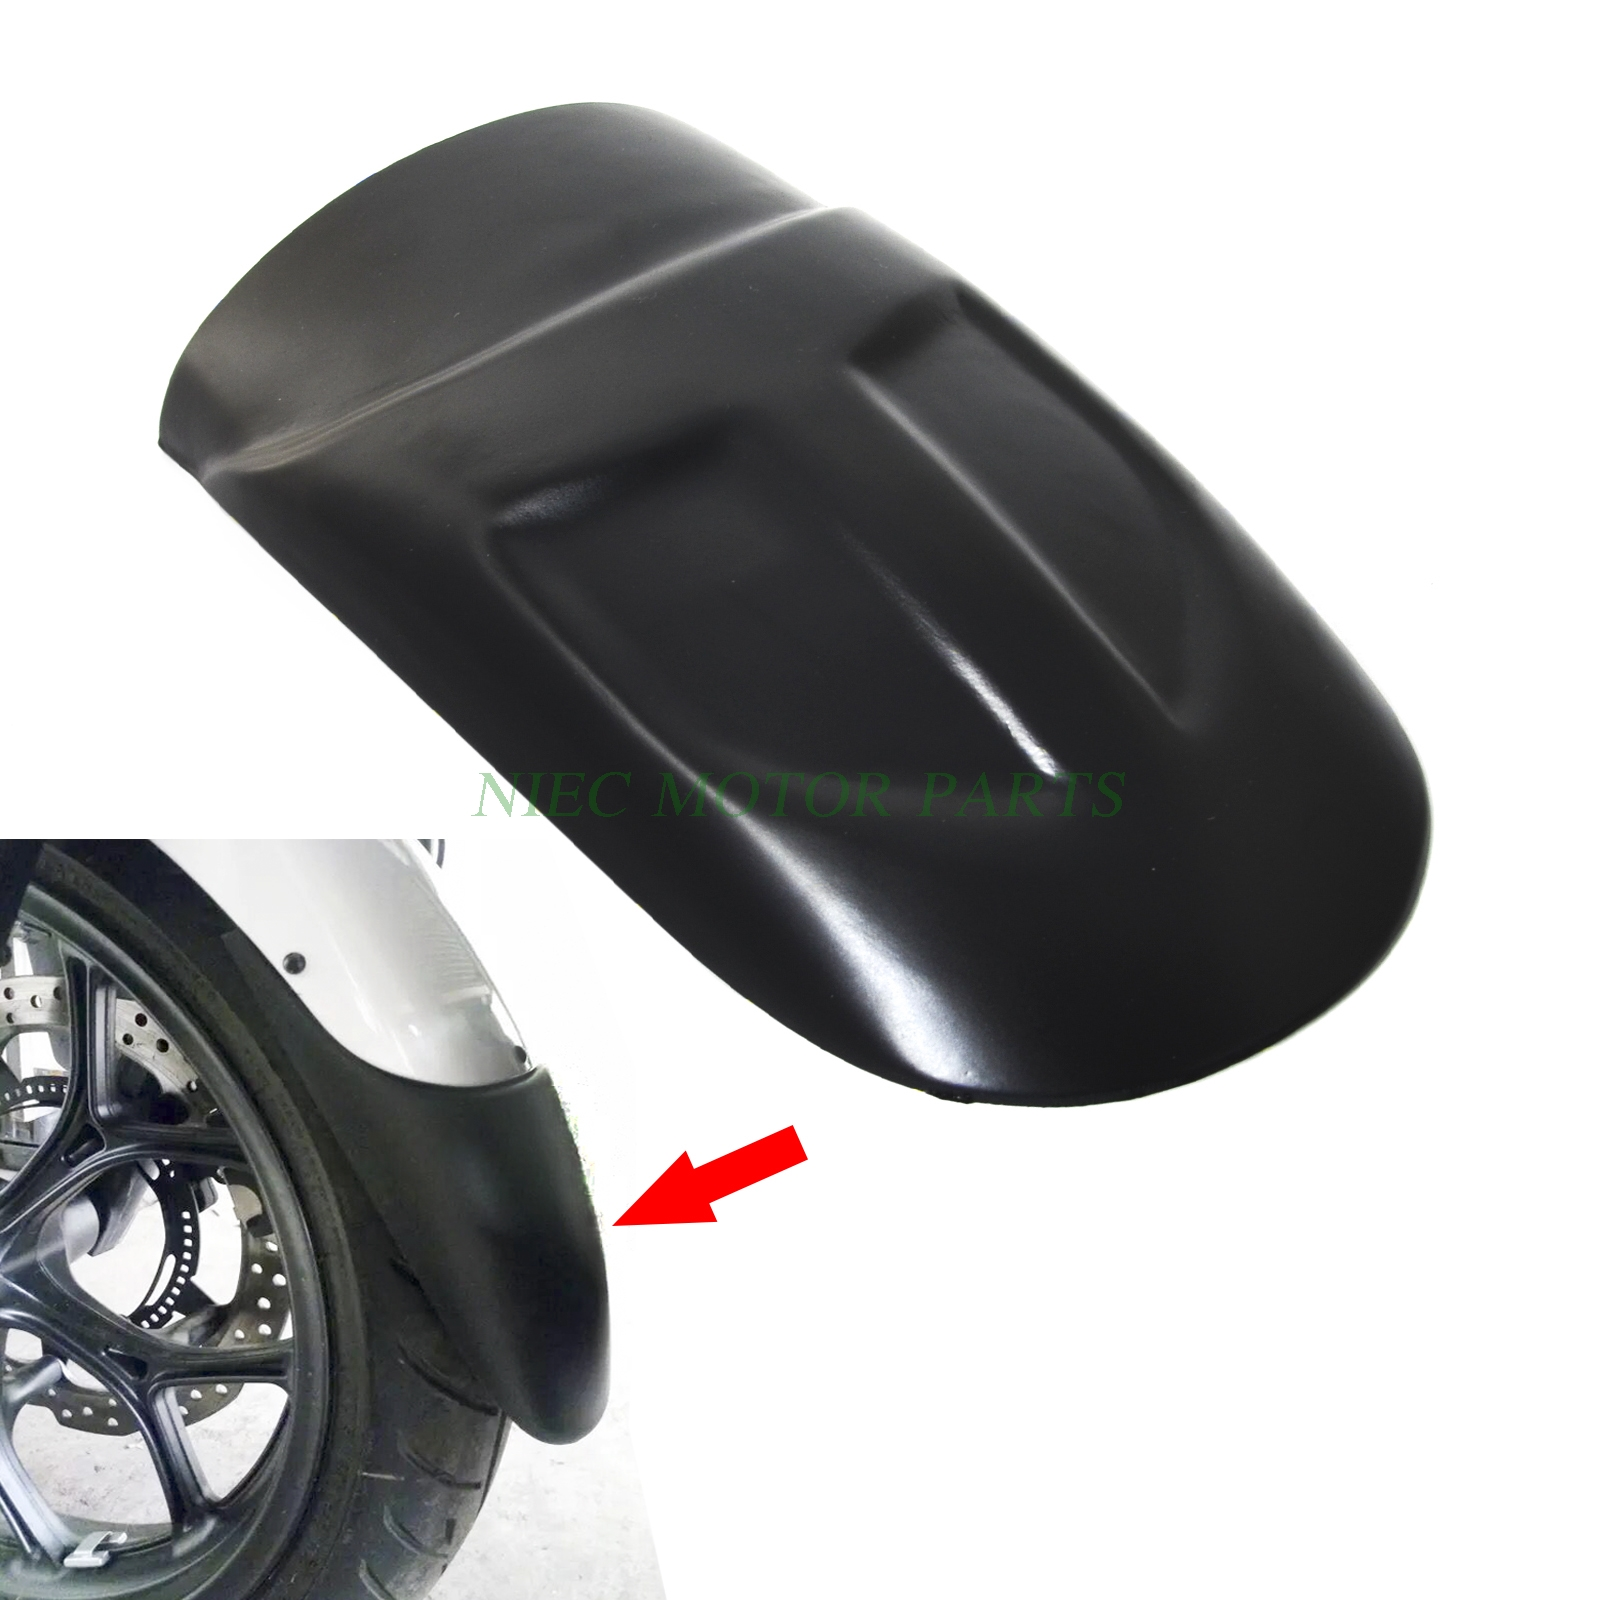 Motorcycle Front Fender Extension Extender For Yamaha MT09 FZ09 2014 2015 2016 MT FZ 09<br>